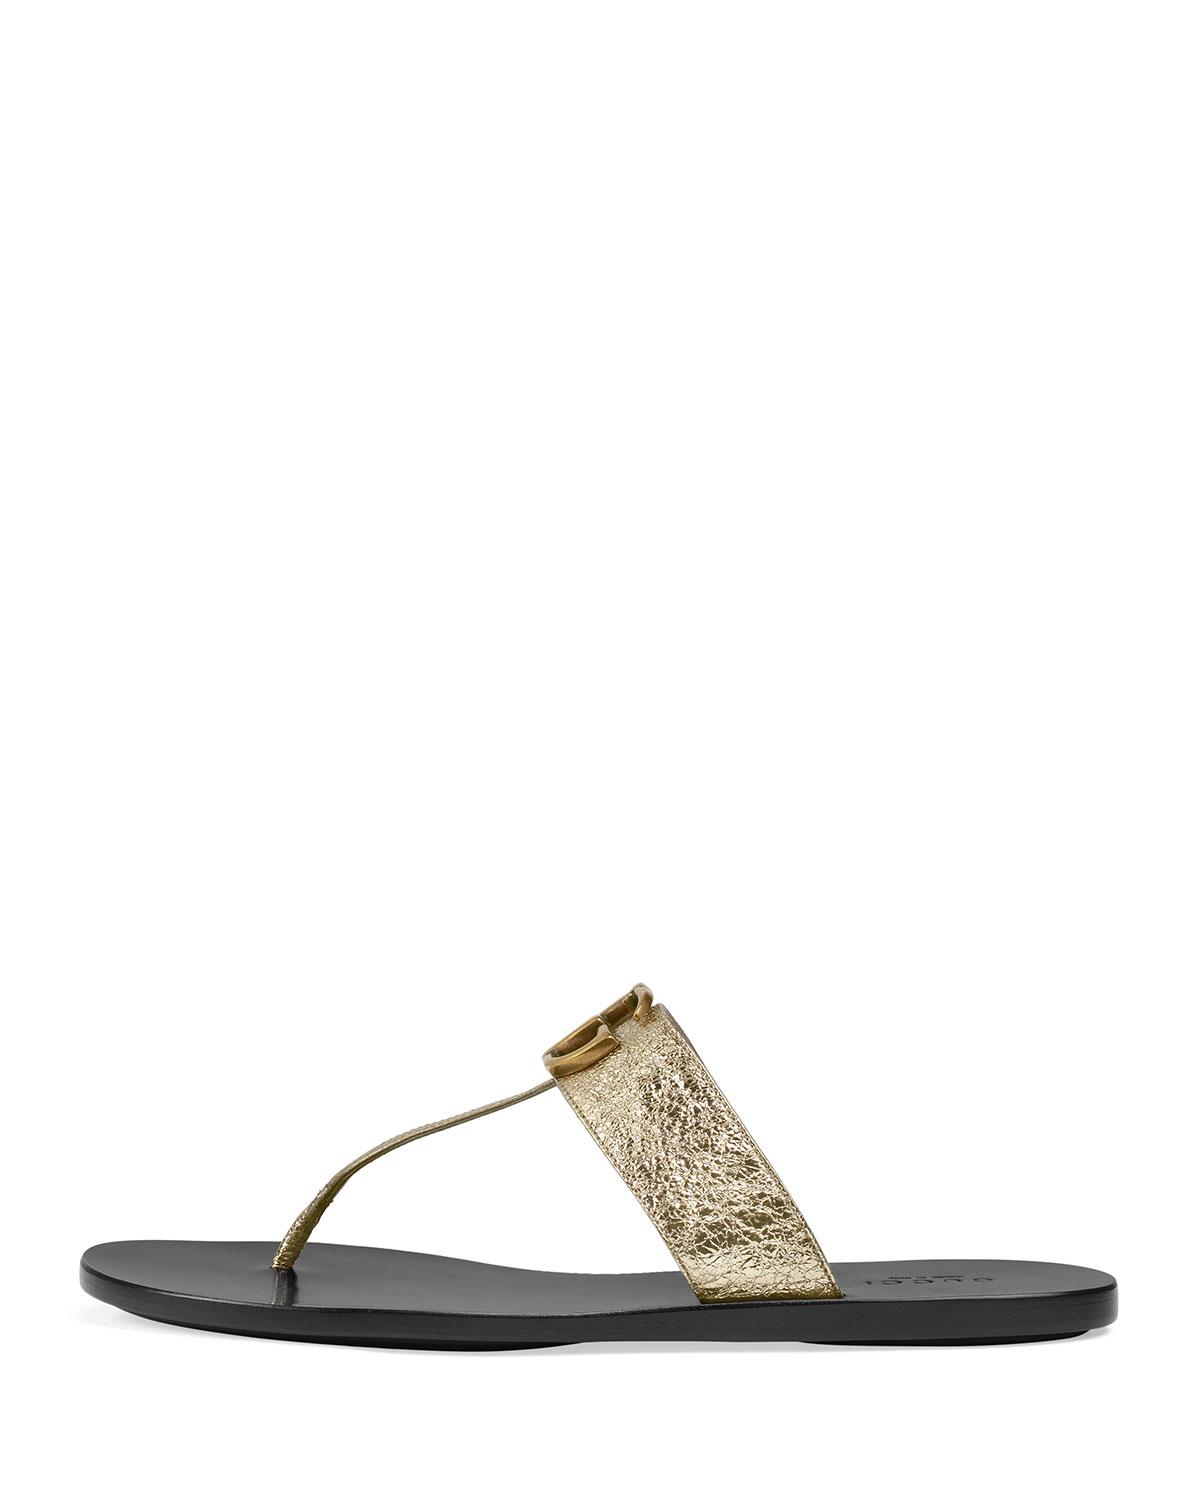 323fe1041582 Lyst - Gucci Gold Double G Leather Thong Sandal. in Metallic - Save 13%